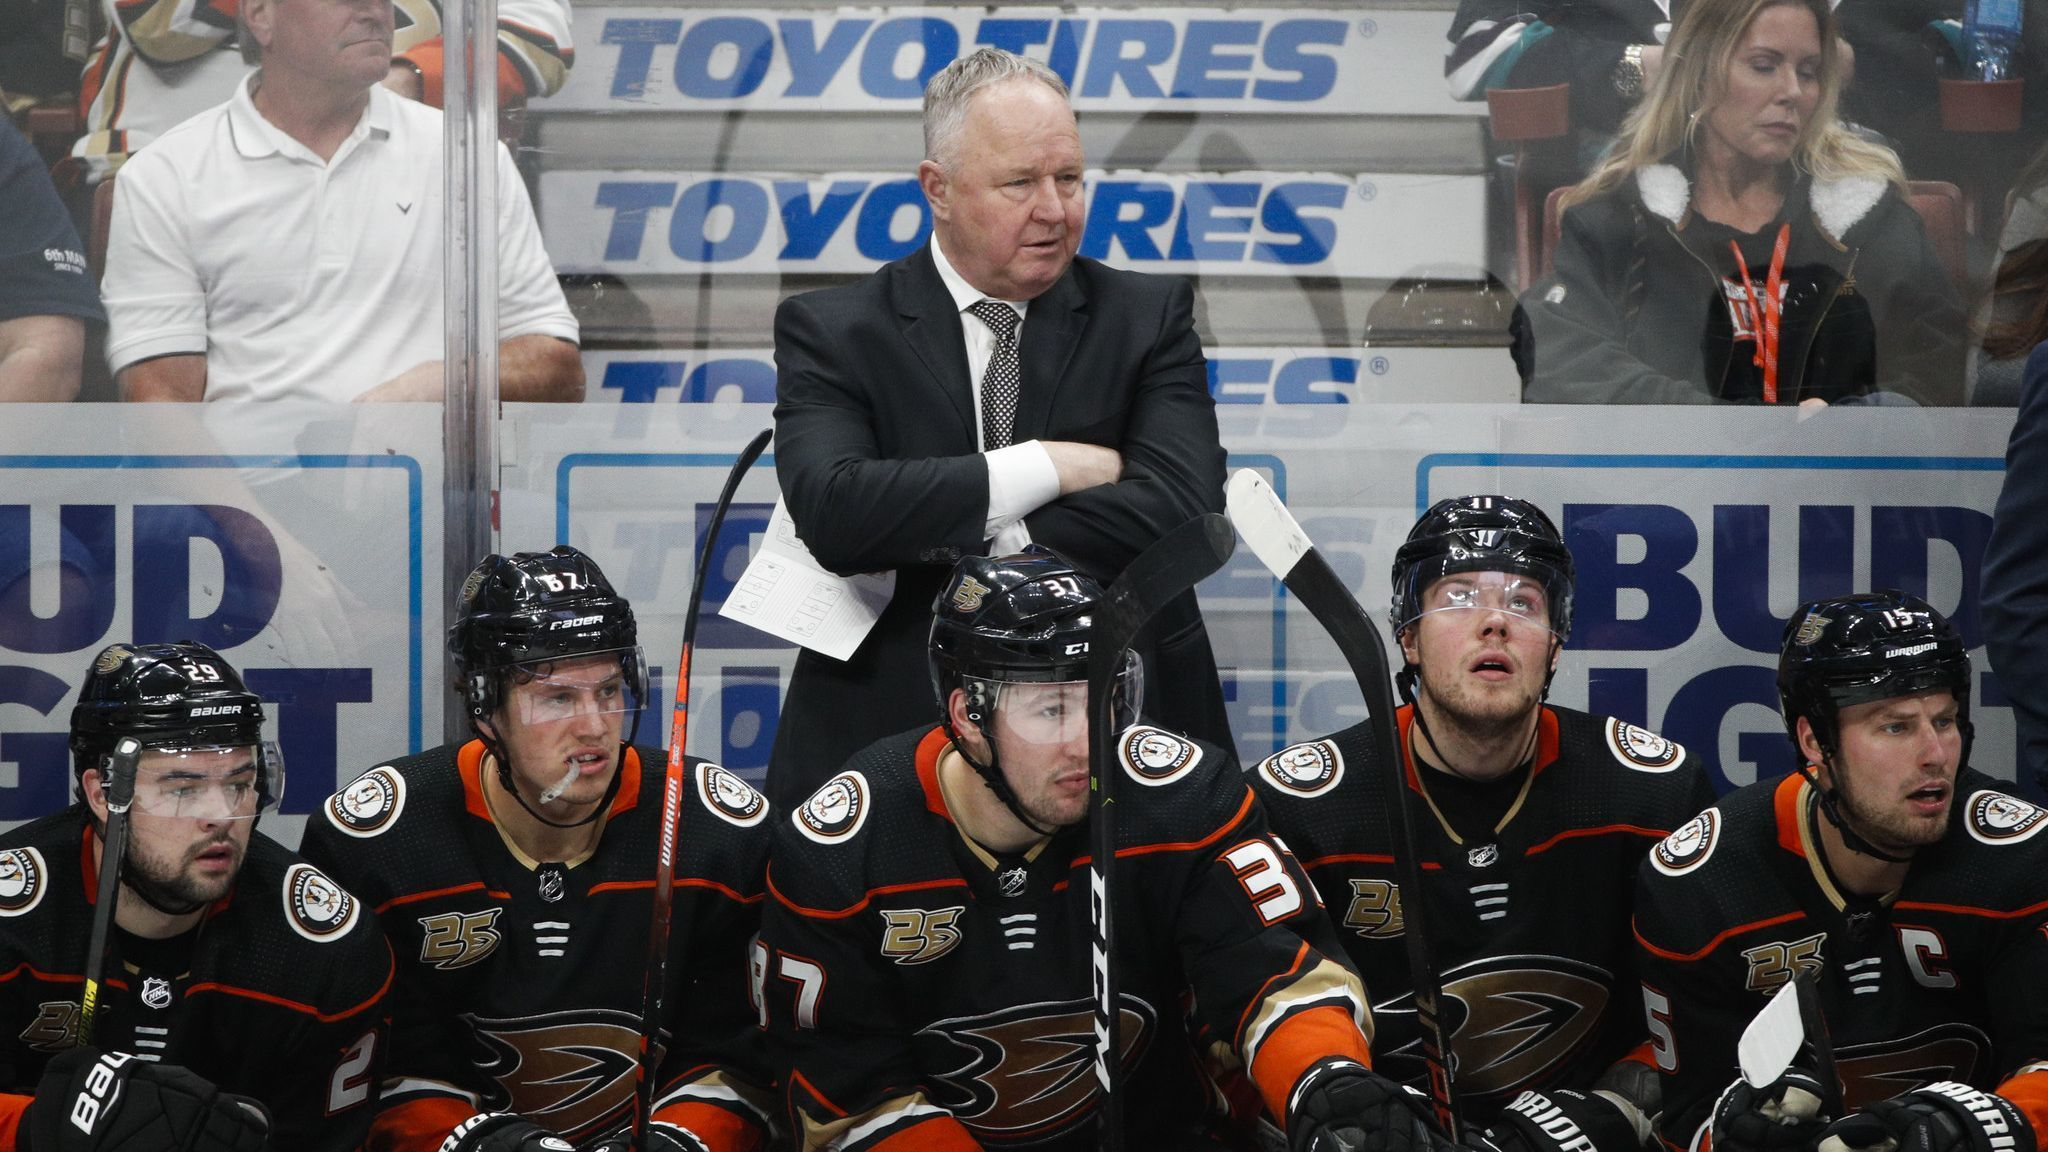 Ducks fire head coach Randy Carlyle, appoint Bob Murray as interim coach